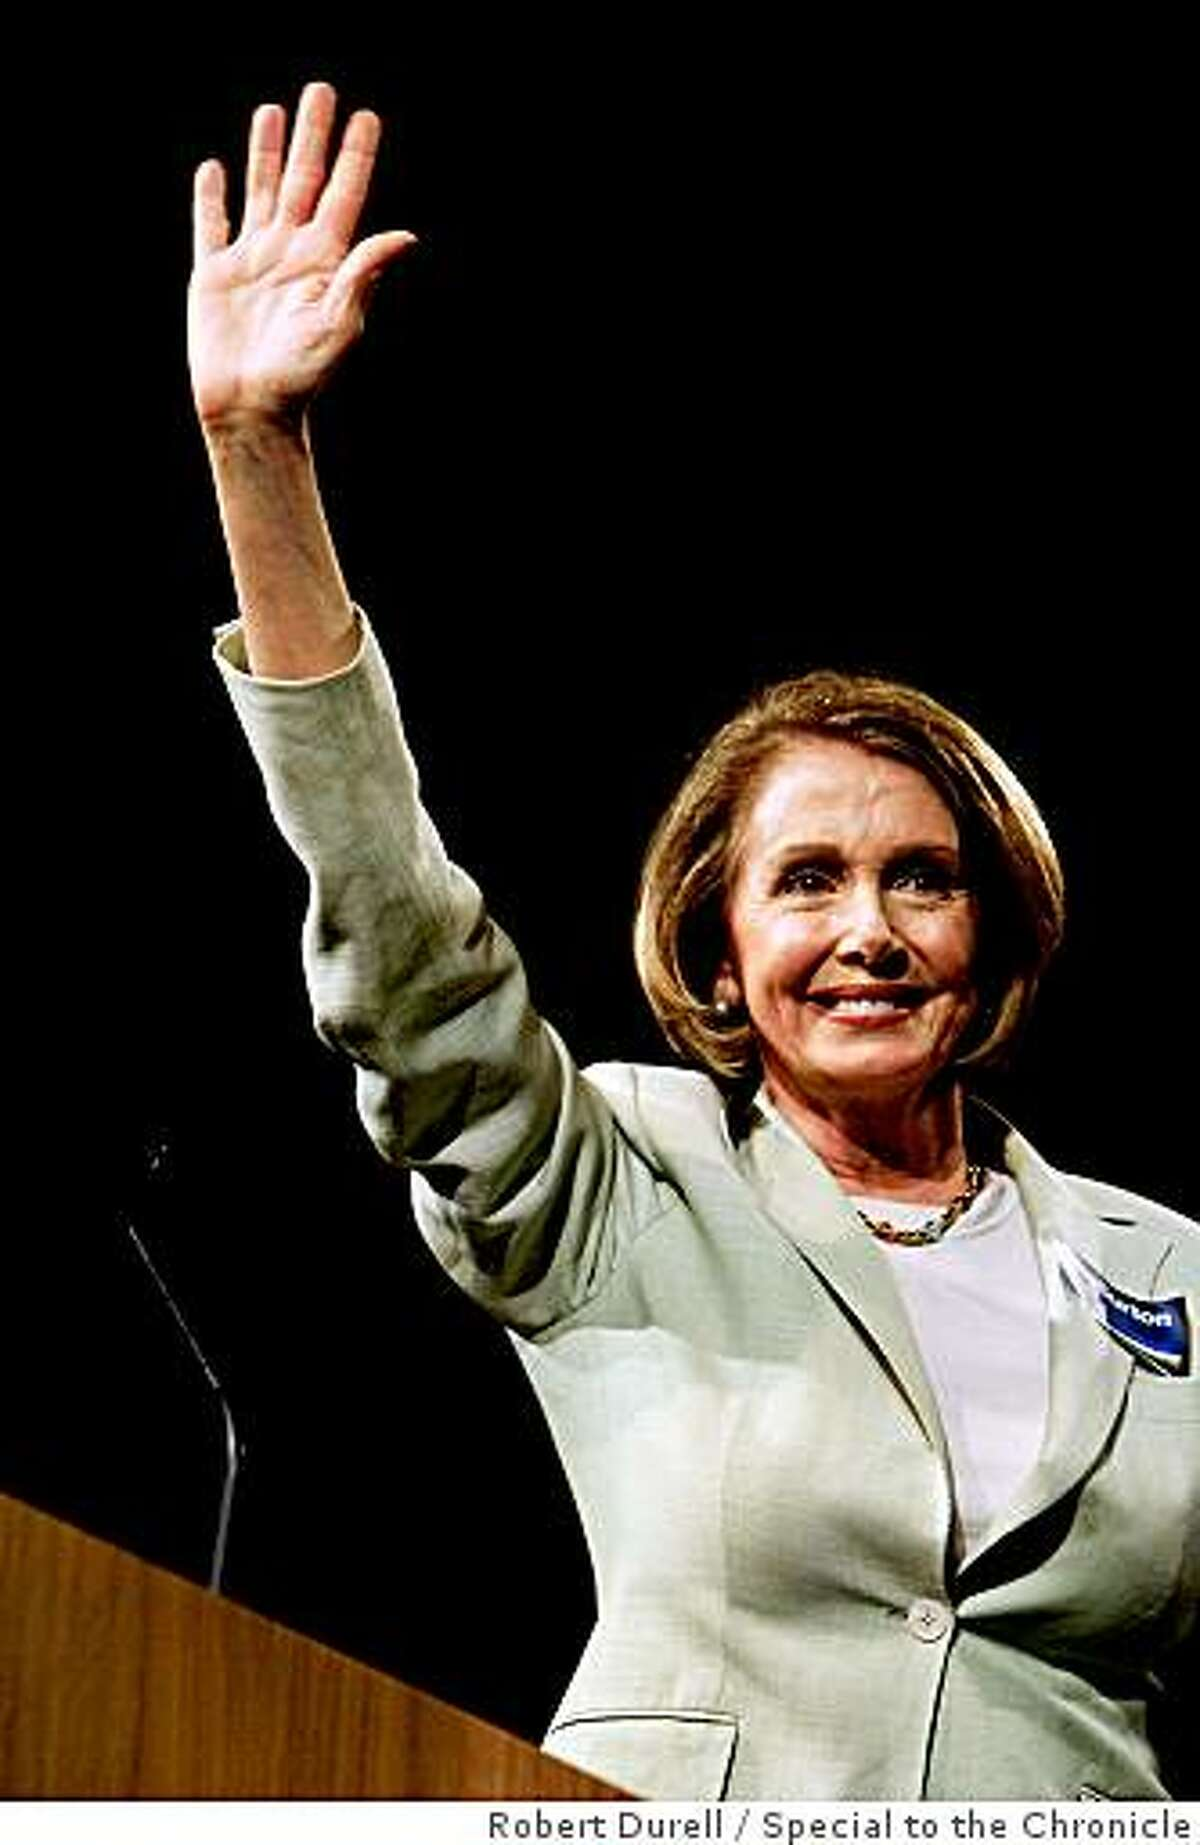 Nancy Pelosi (D-California), Speaker of the House, waves to delegates after addressing the state Democratic Convention in Sacramento, April 25, 2009.